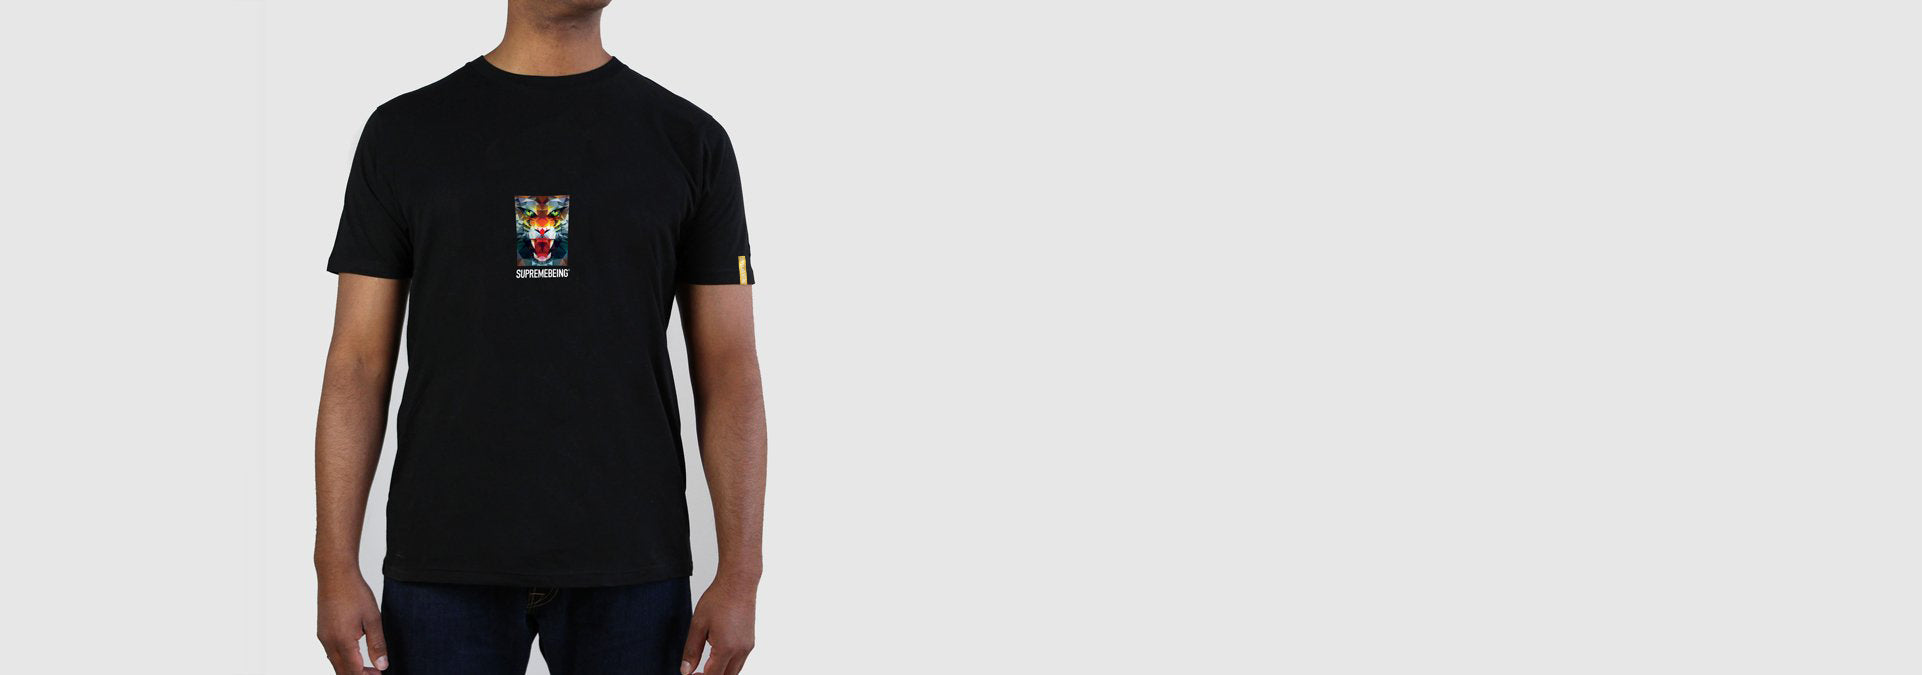 Rousseau T-Shirt Black